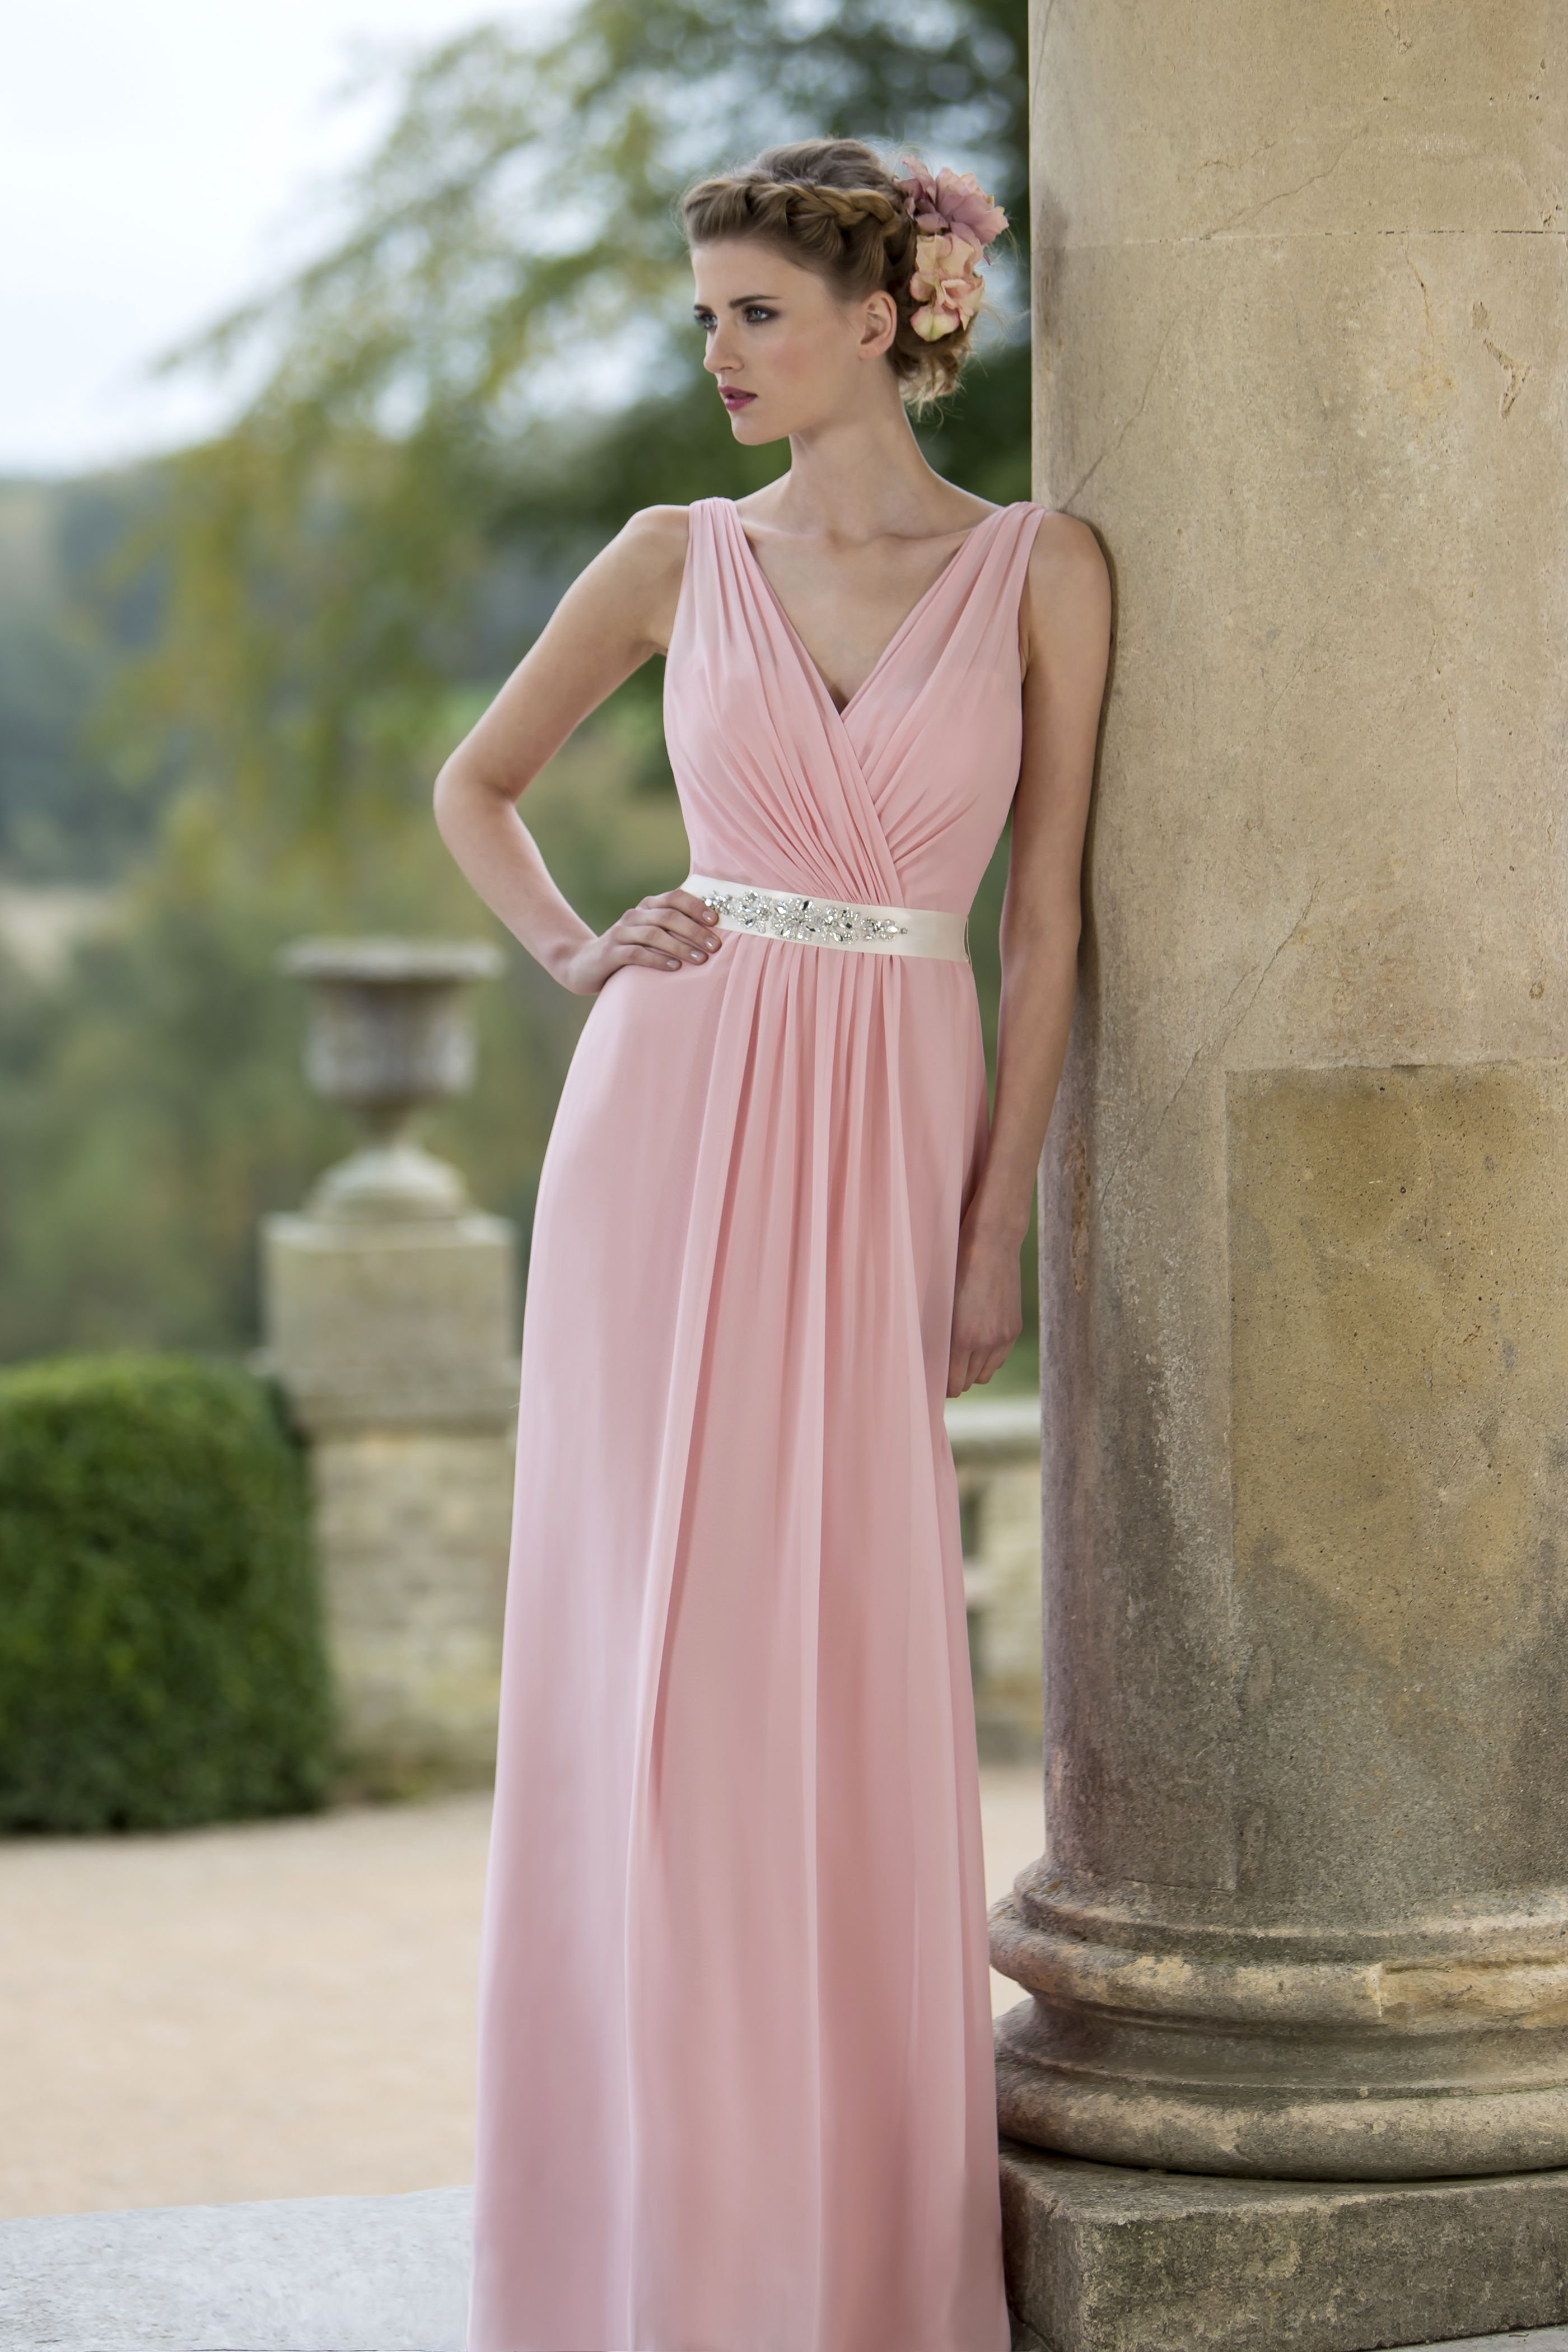 M628 - Slim Chiffon bridesmaid dress with pleated shoulder straps ...